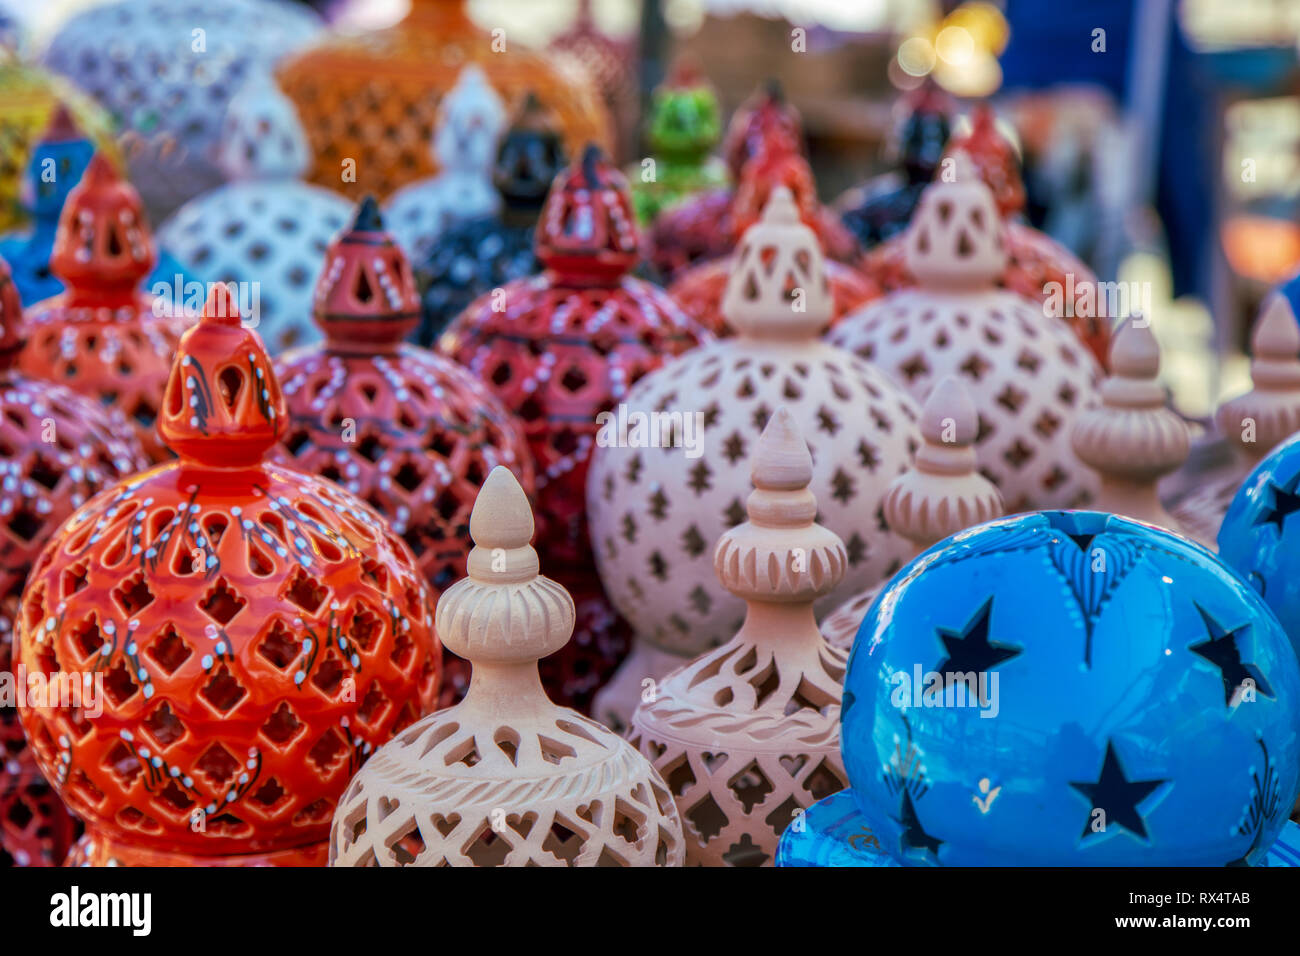 Background of colourful ceramic handicrafts with decorative cutout patterns in a market or store in a close up view on the round tops of the items Stock Photo